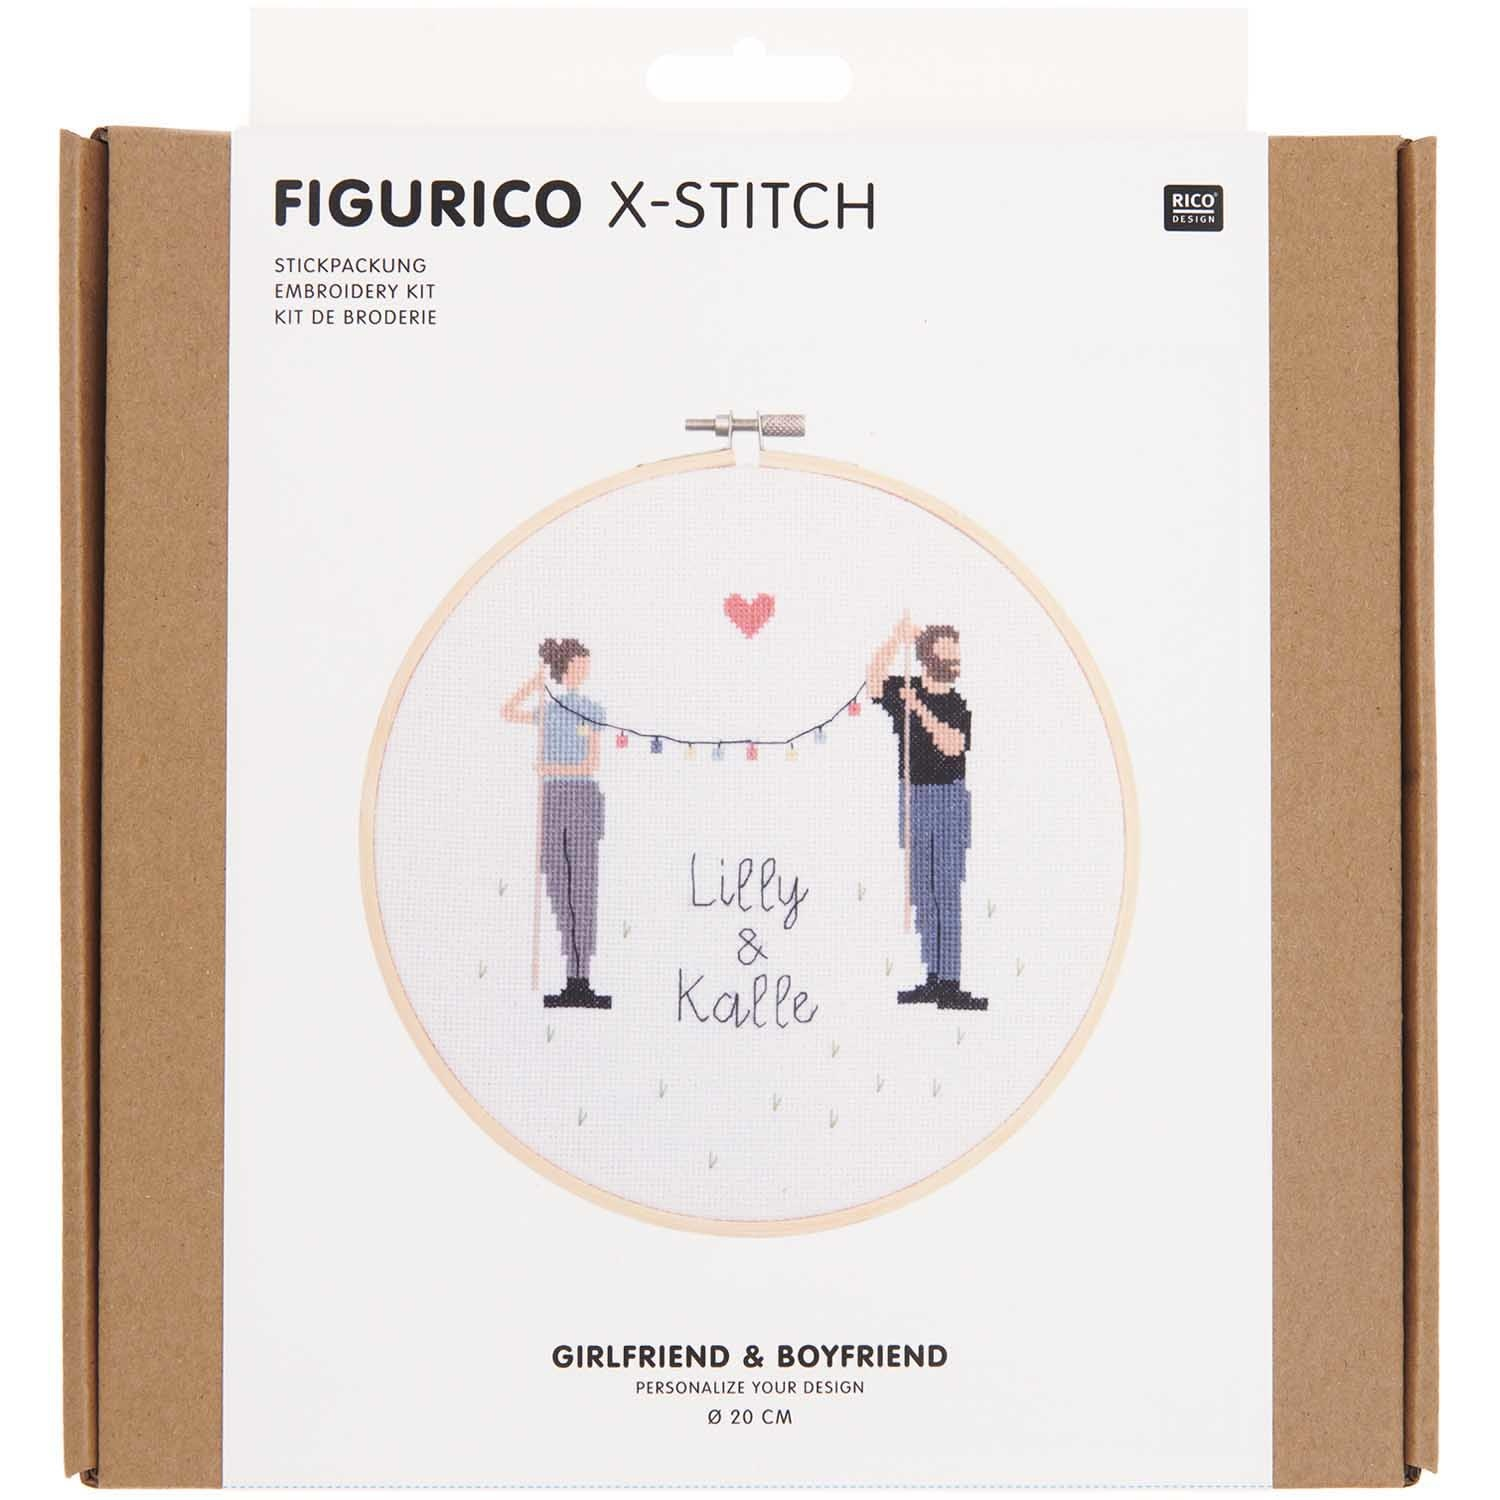 Rico NAY Embroidery kit Figurico Girlfriend & Boyfriend, picture Ø 20 cm, counted cross stitch